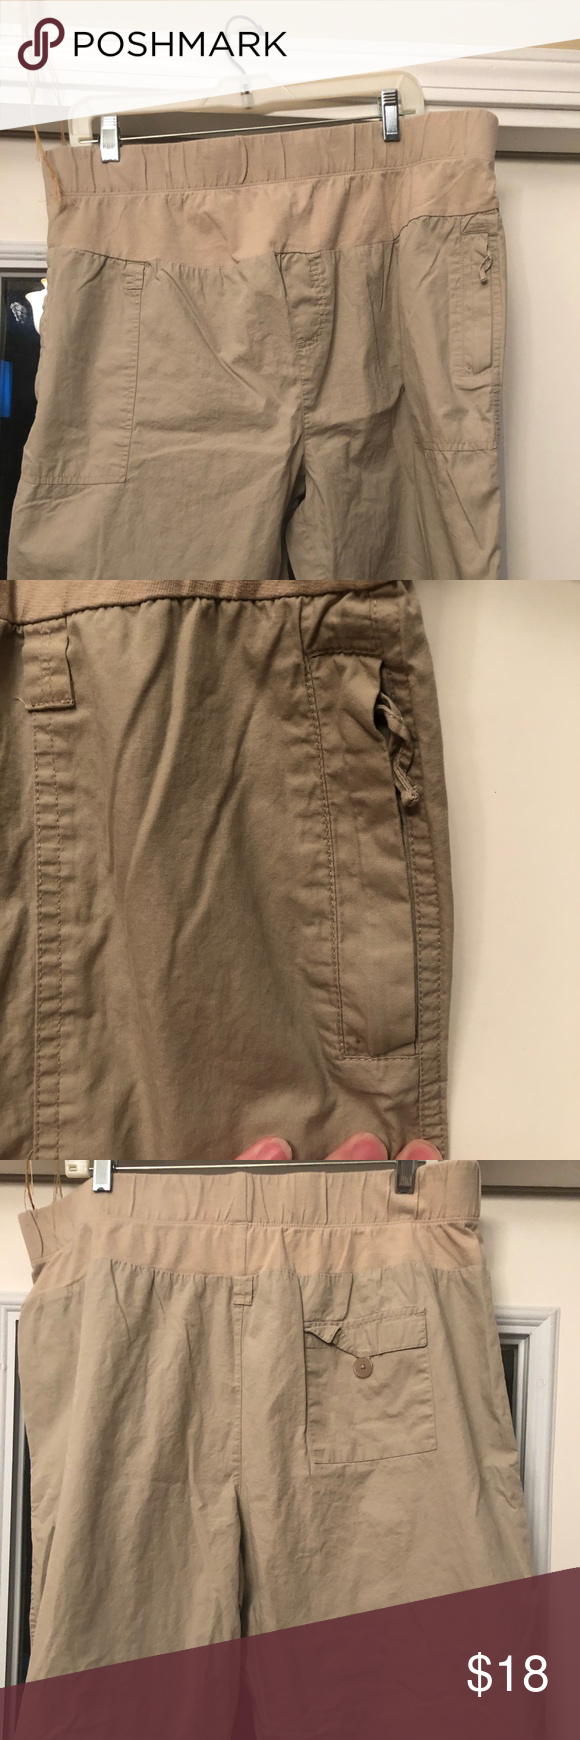 dc1a9ce12e042 Oh Baby by Motherhood Maternity Shorts Size XL Gently used, please see  photos for details